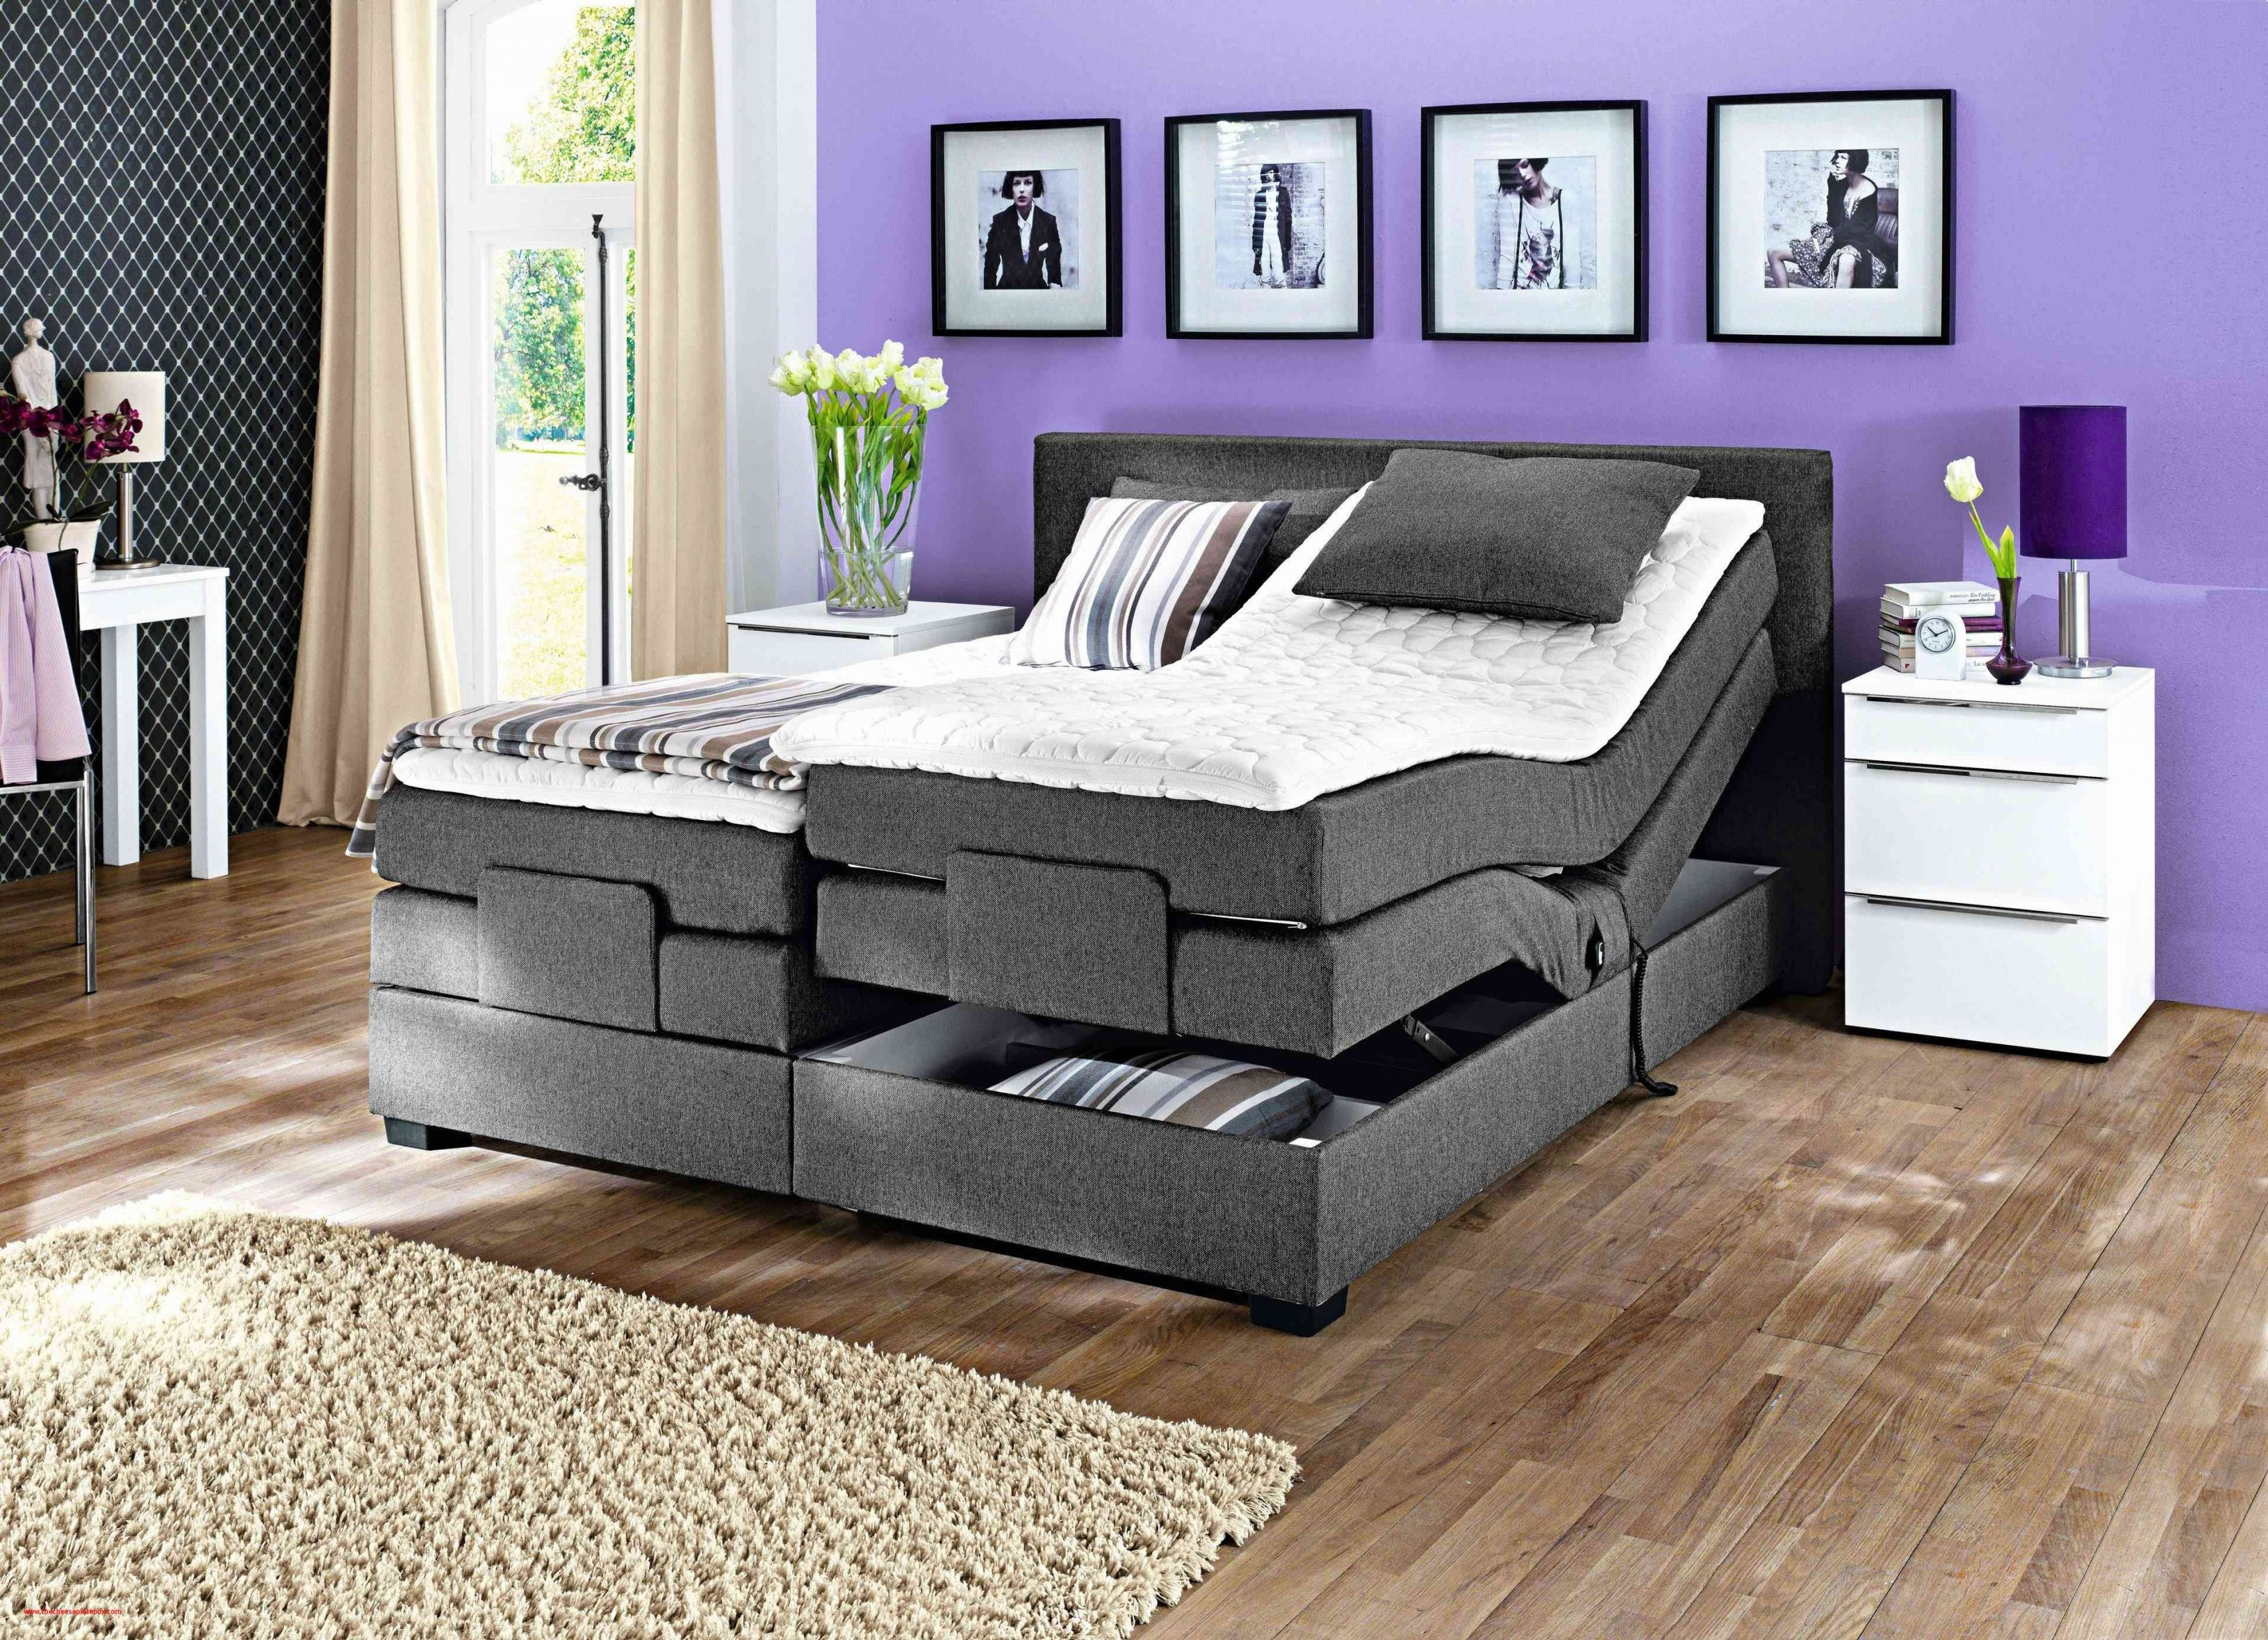 Desire Boxspringbett 90X200 Mit Bettkasten Thing von Boxspringbett Mit Motor 140X200 Photo